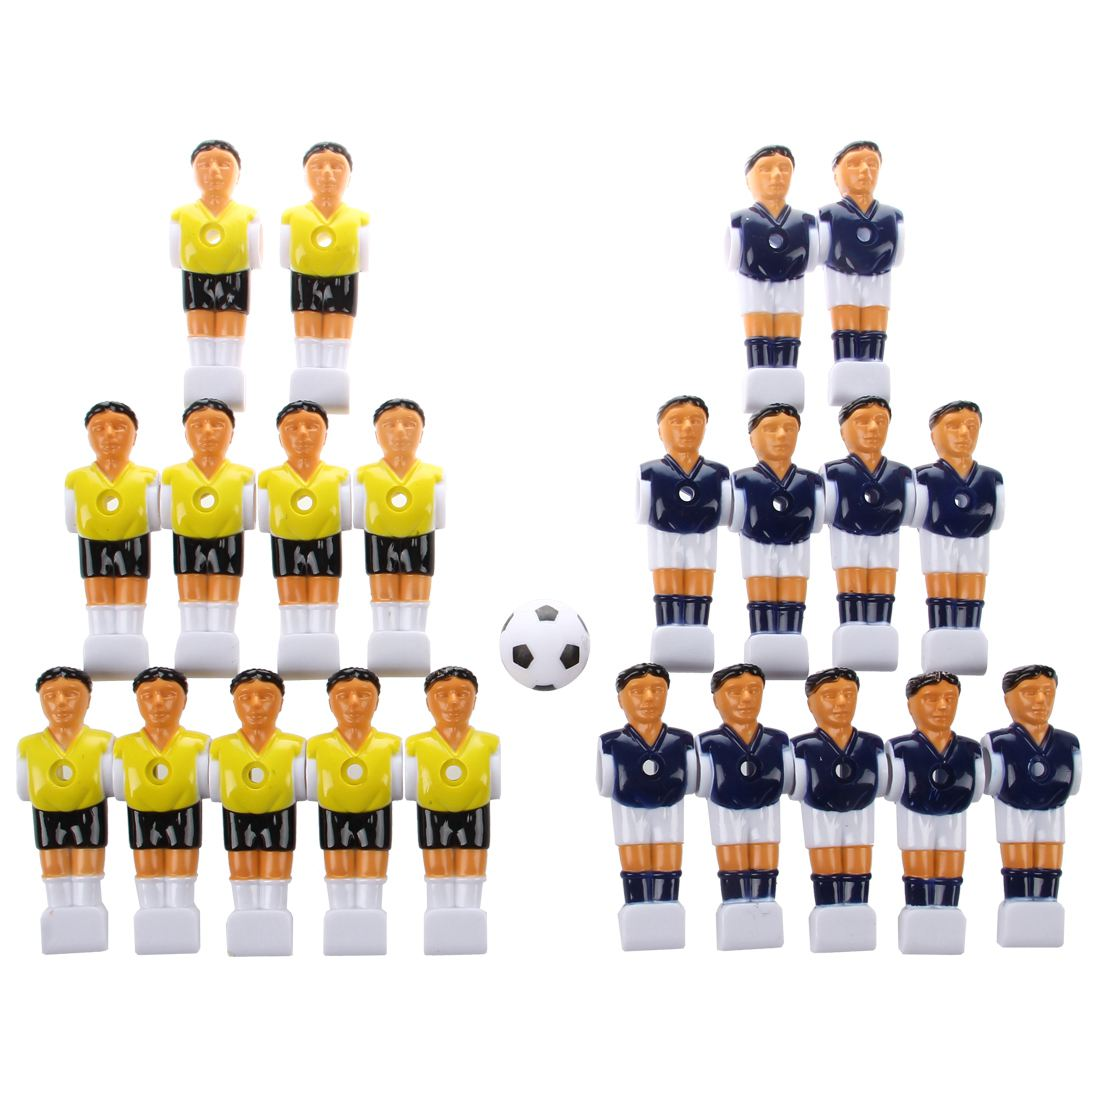 Super sell-22pcs Foosball Man Table Guys Man Soccer Player Part Yellow+Royal Blue with Ball 22pcs sand